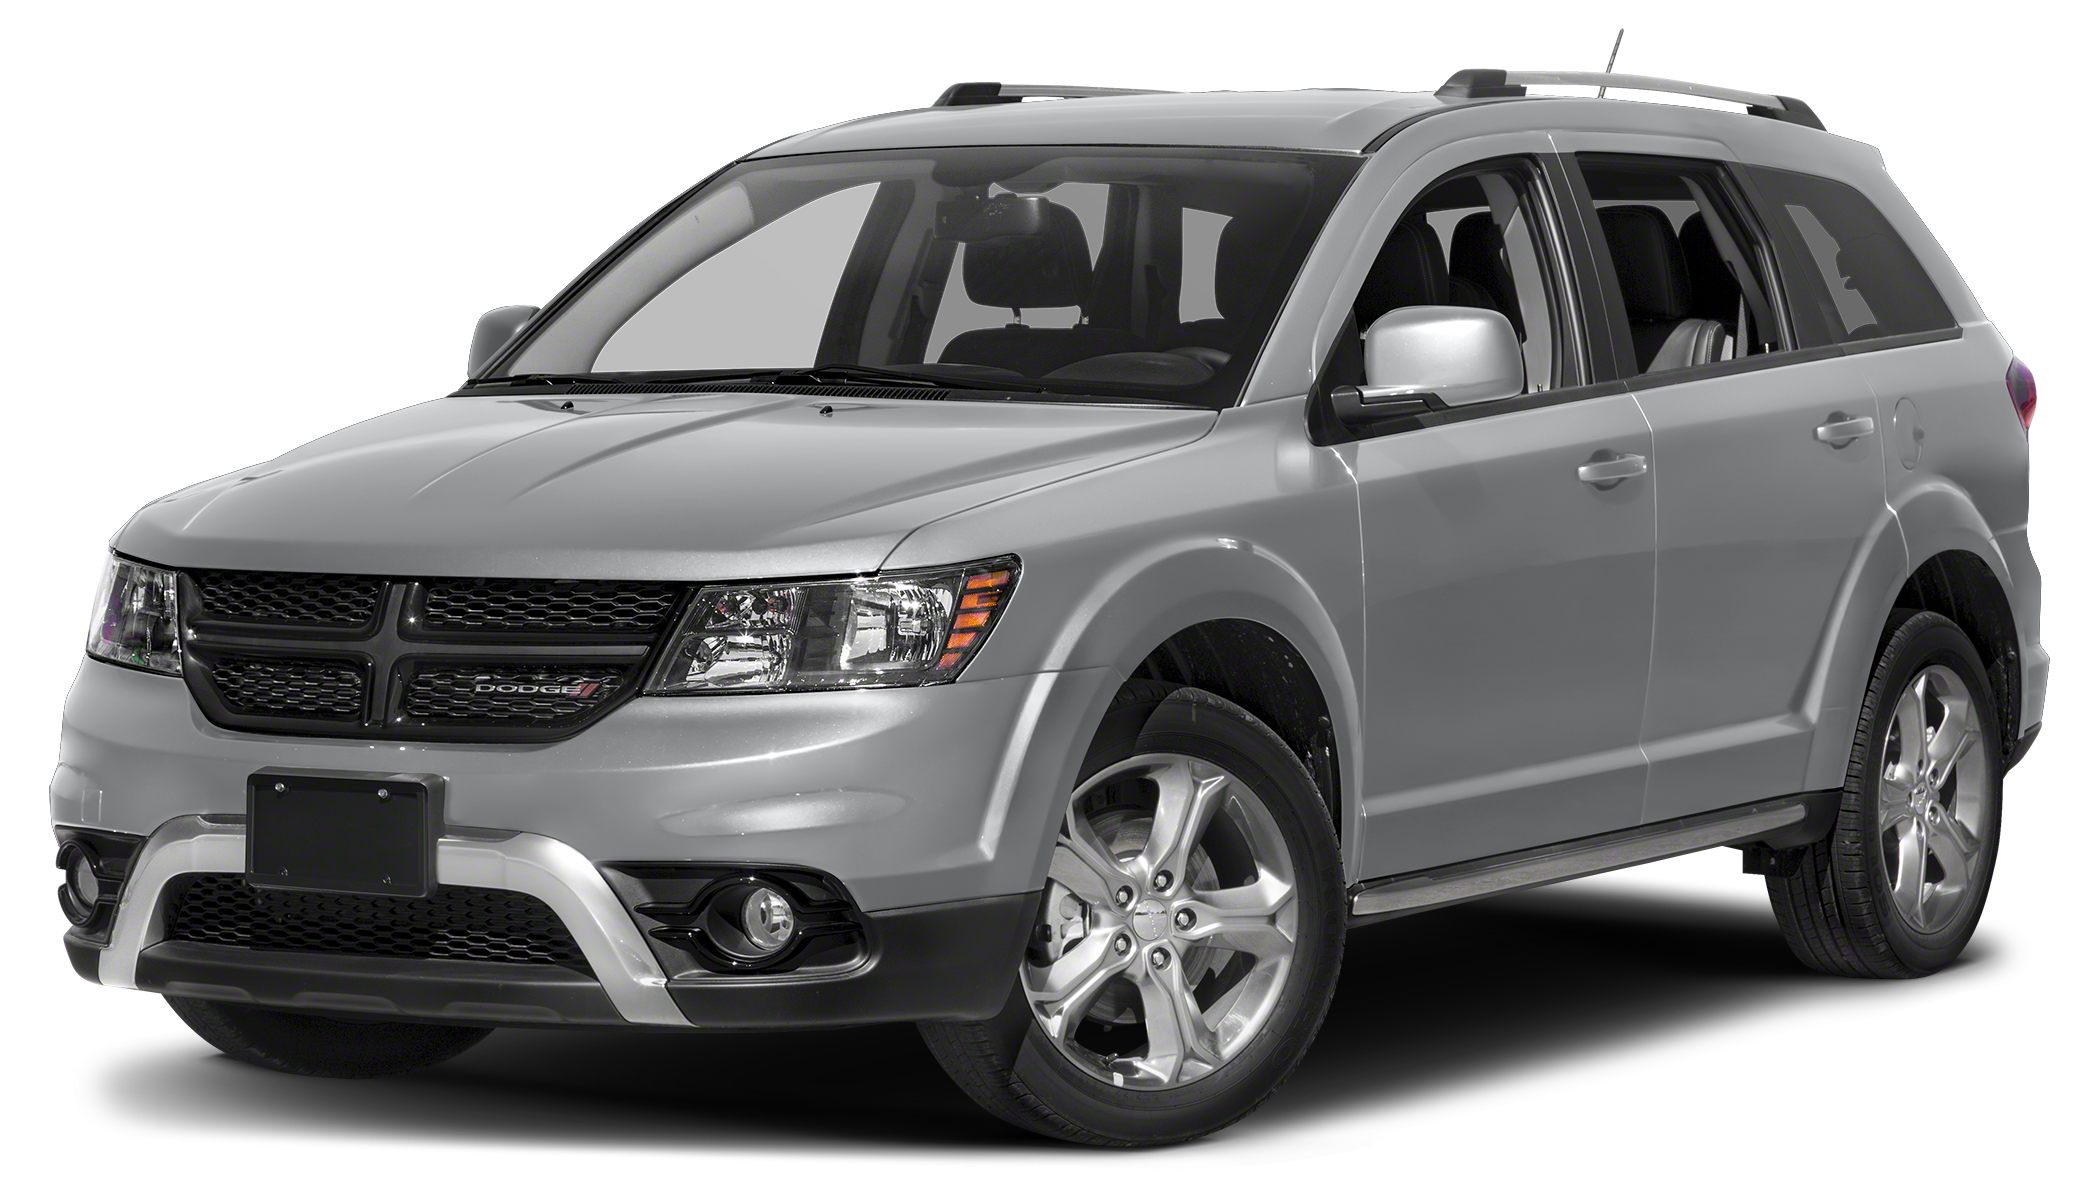 2018 Dodge Journey Crossroad SPECIAL ONLINE PRICE INCLUDES 4000 IN REBATES THAT ALL CUSTOMERS QU